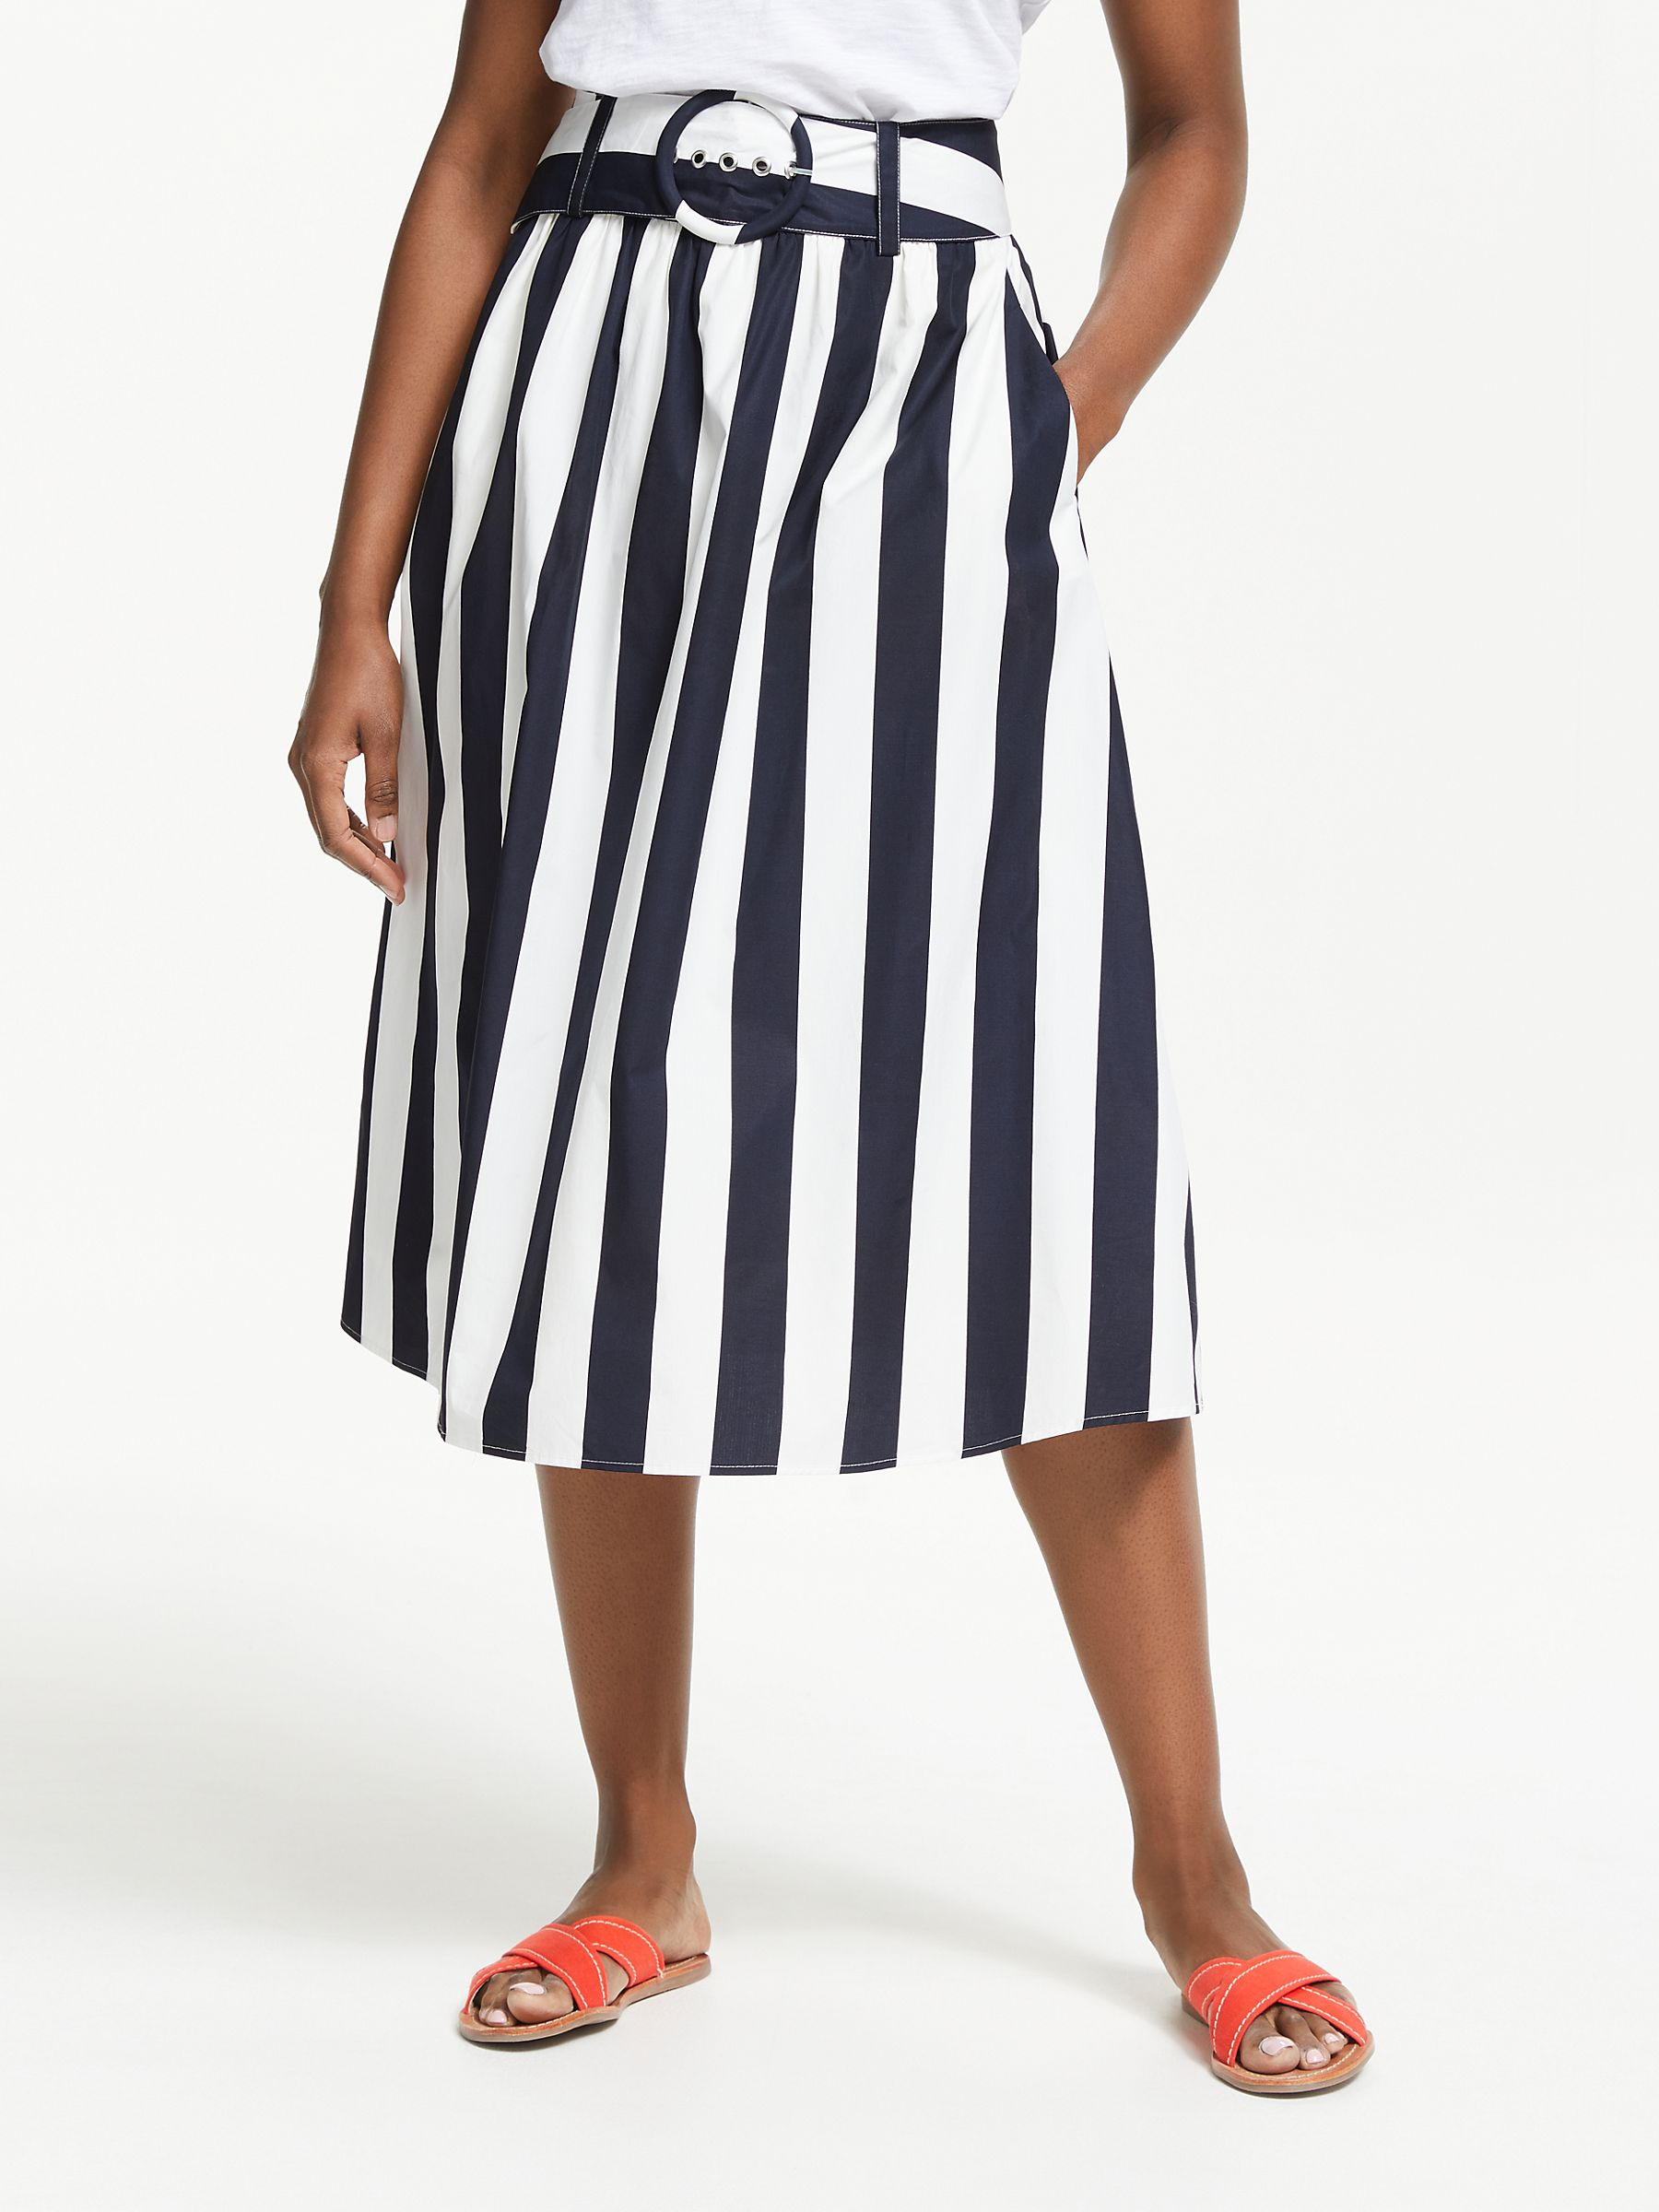 new selection latest discount release info on Boden Rebecca Cotton Midi Skirt, Navy/Ivory